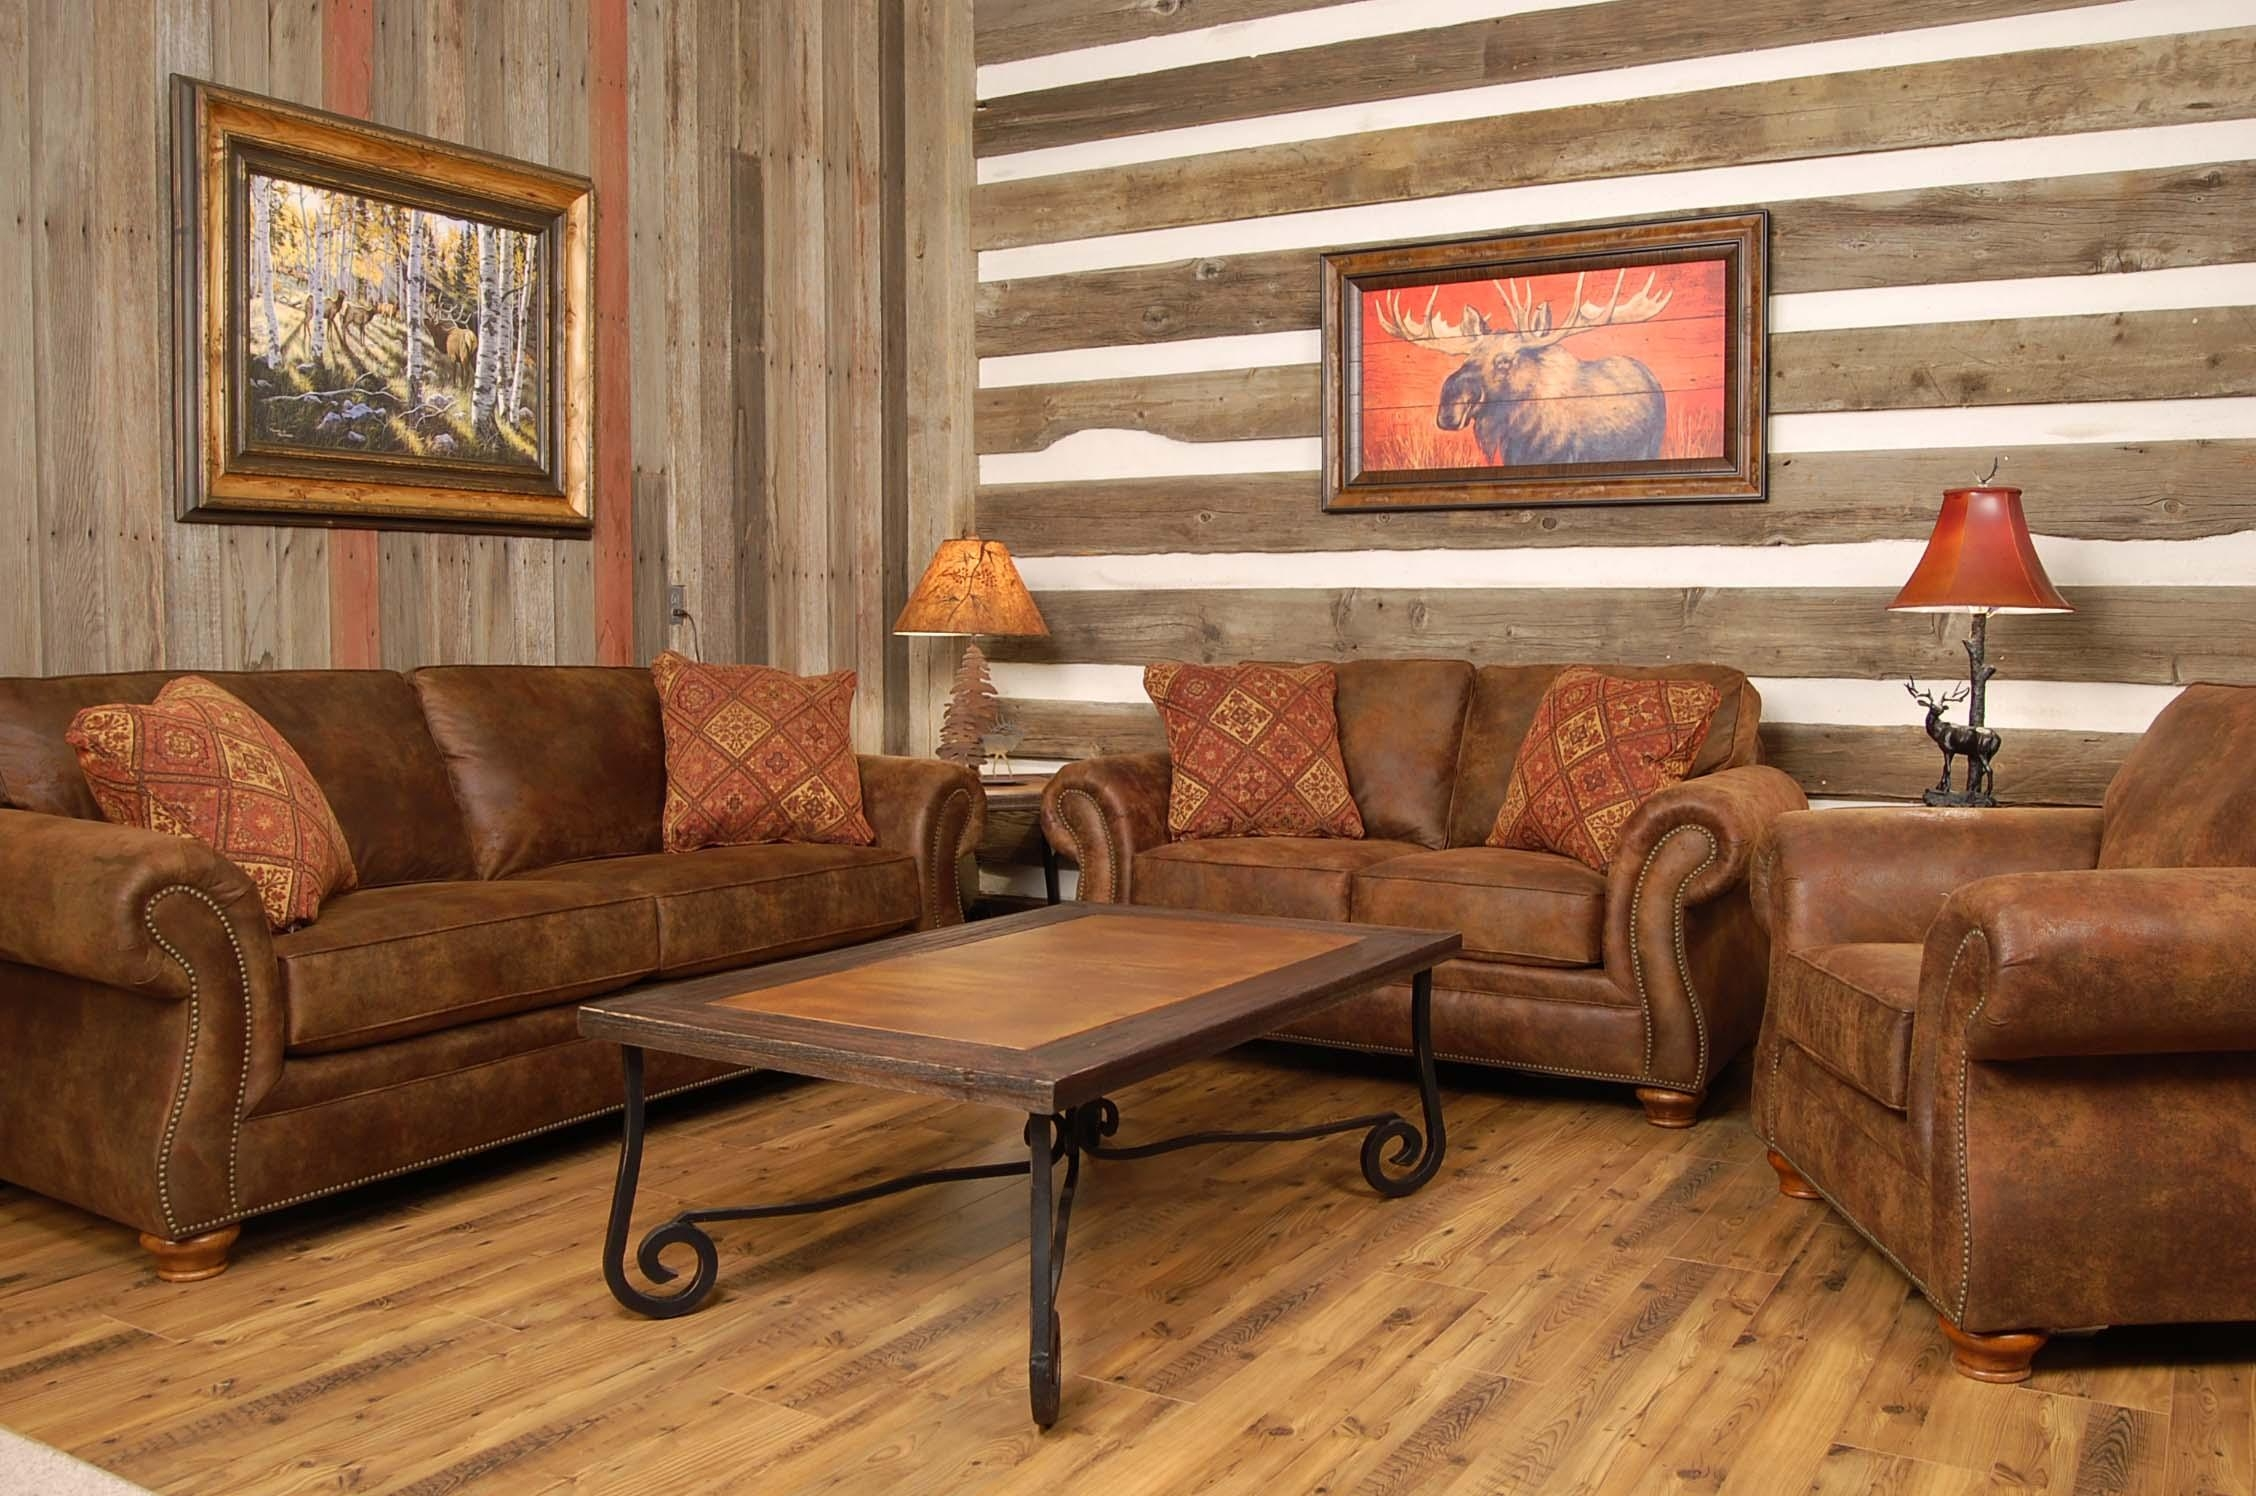 Country Style Sofas And Chairs | Tehranmix Decoration Within Country Sofas And Chairs (View 8 of 20)